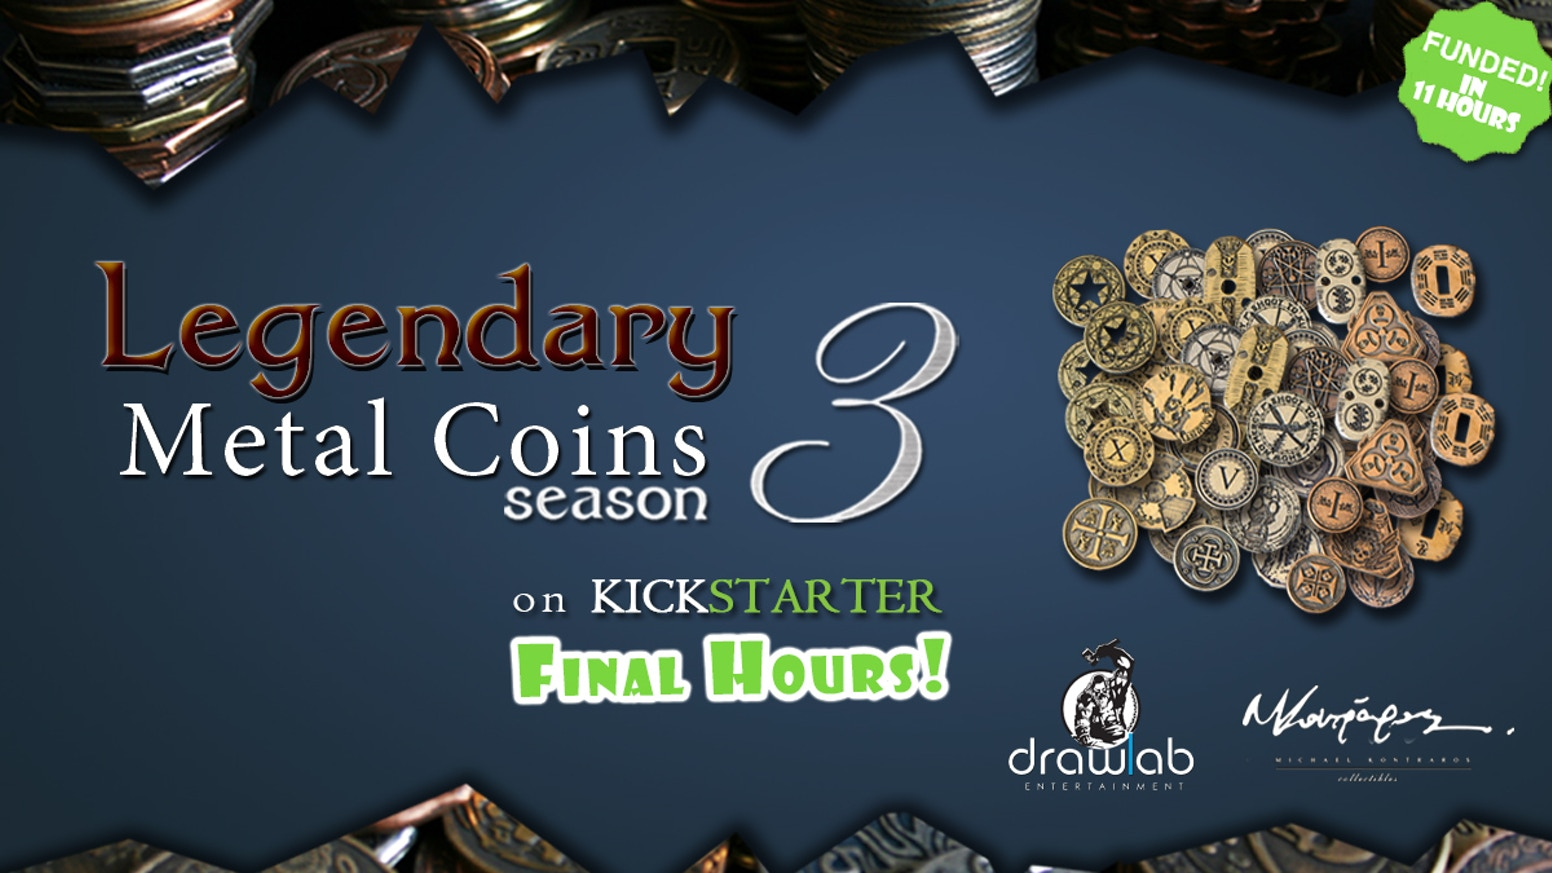 Legendary Metal Coins are back on Kickstarter, Big, Heavy and Beautiful.